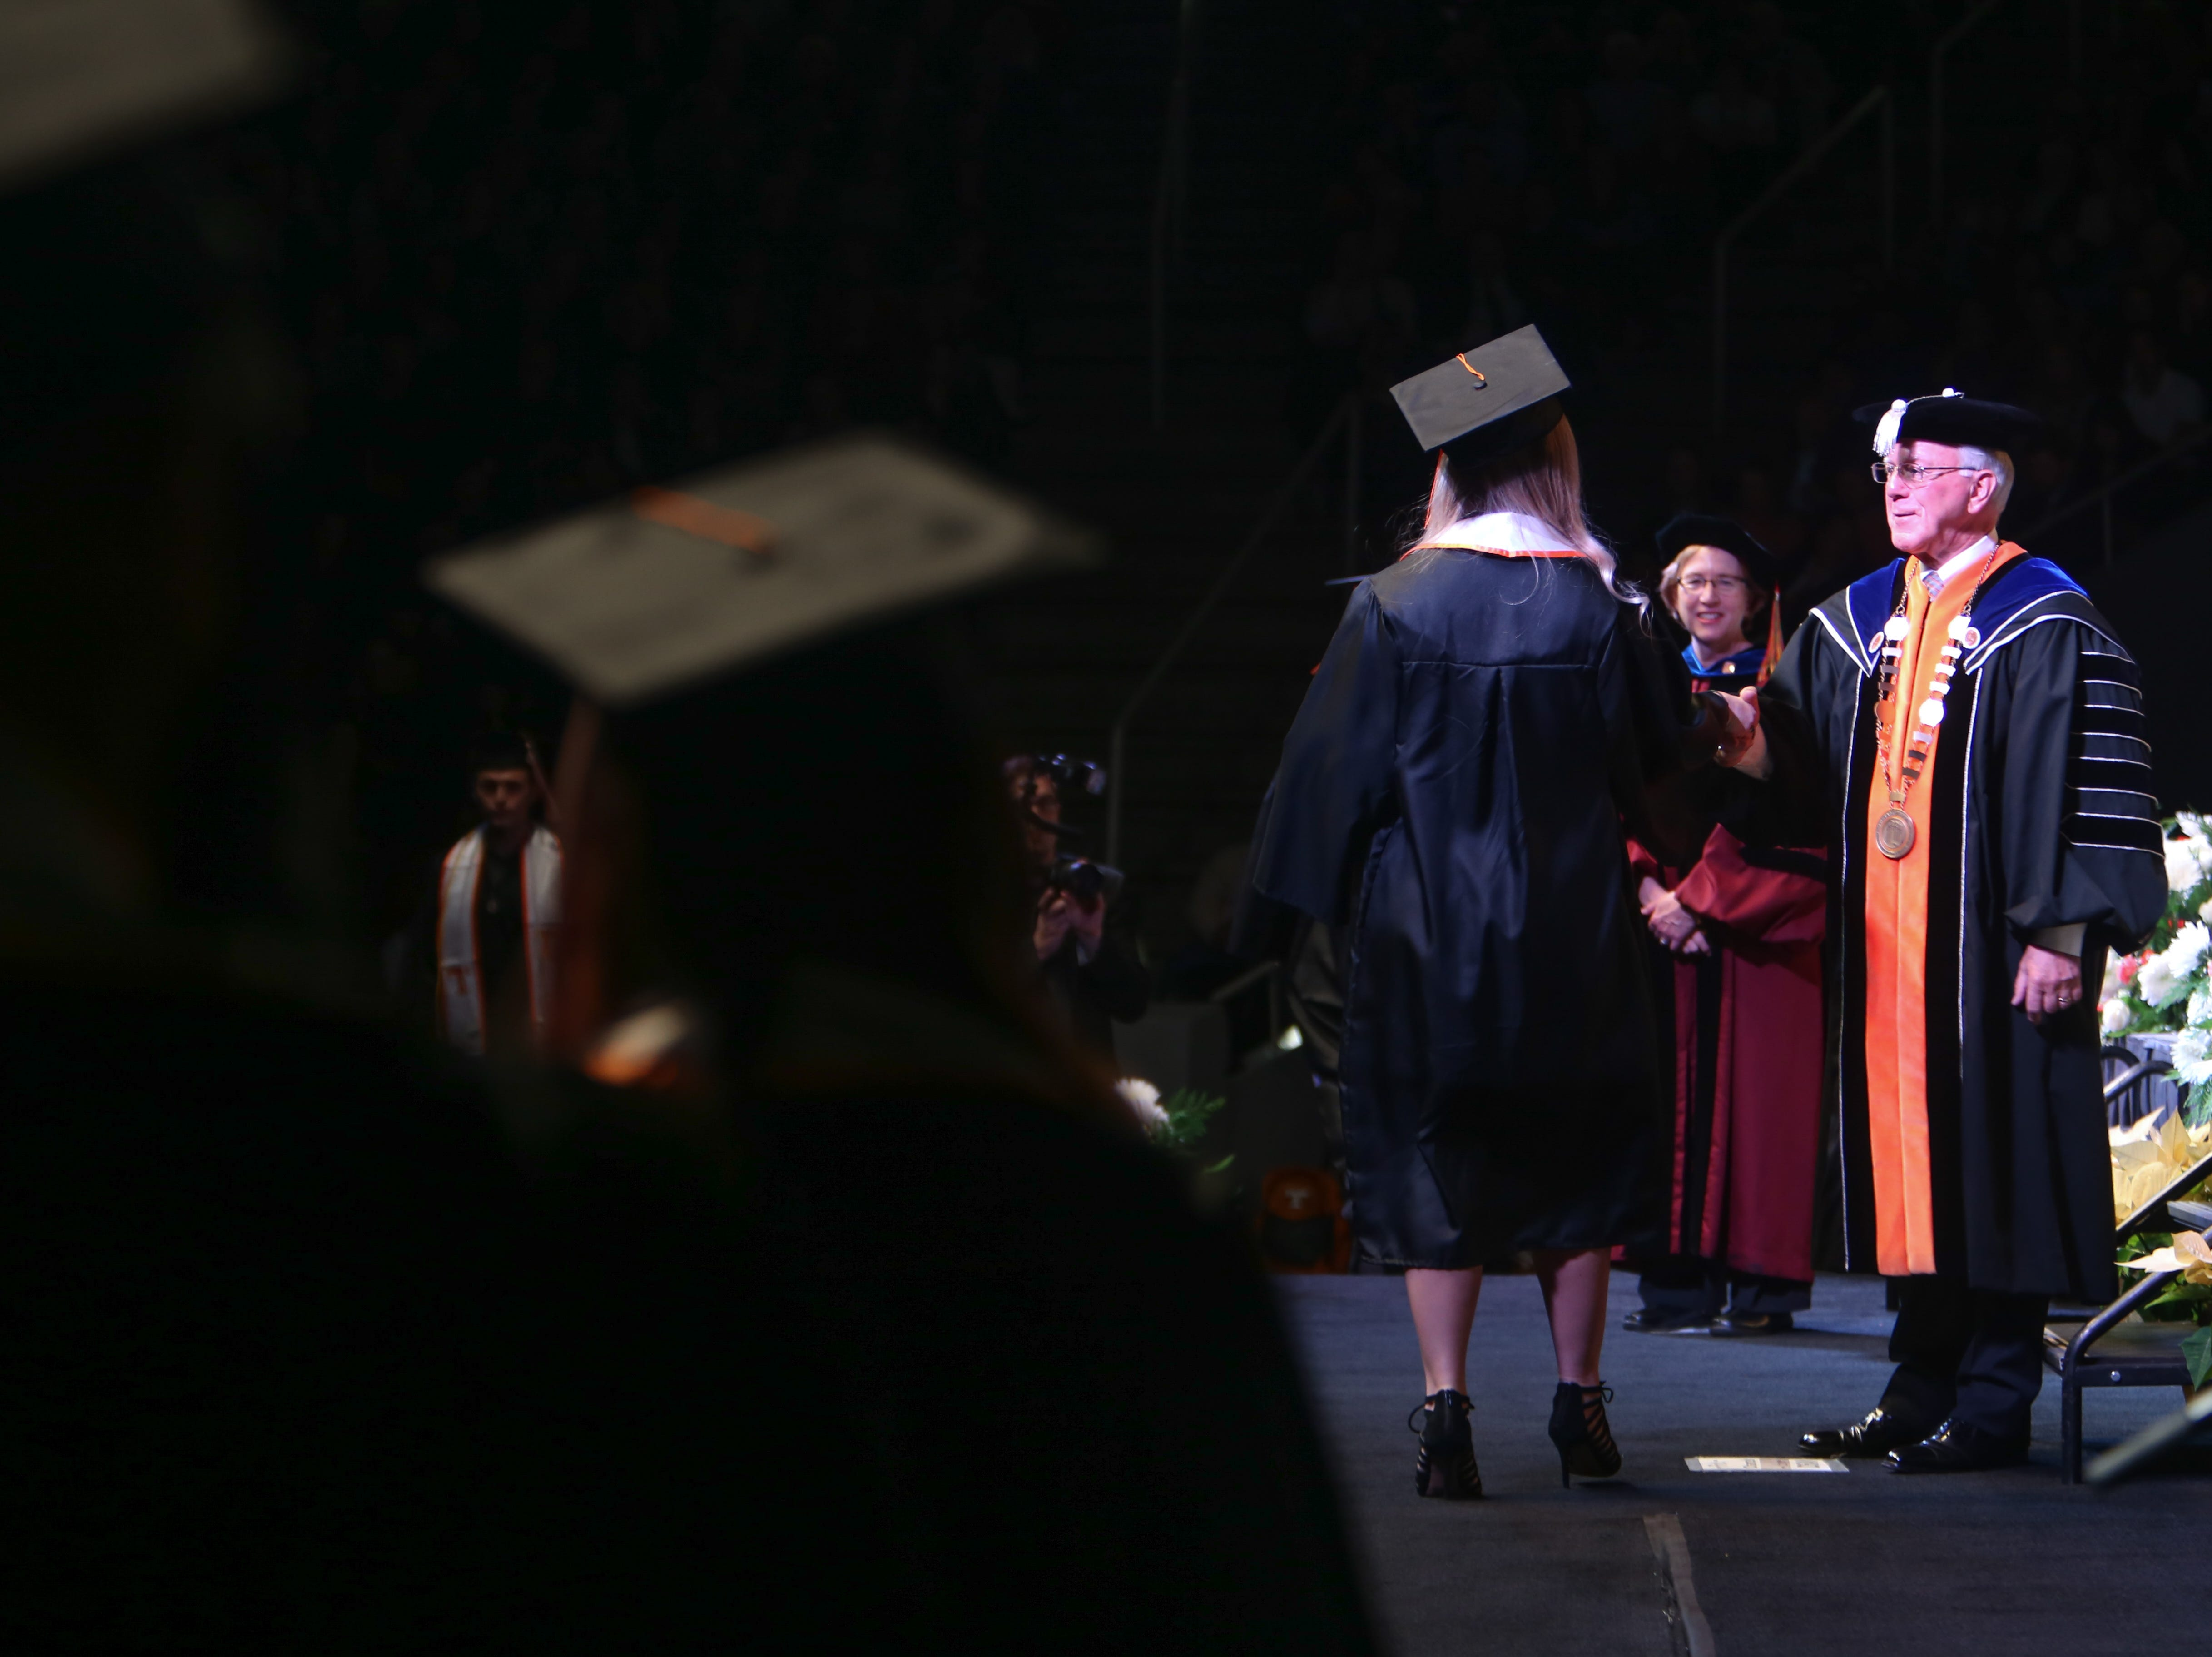 Chancellor Wayne T. Davis shakes hands with the graduates during the University of Tennessee winter Commencement ceremony at Thompson-Boling Assembly Center and Arena in Knoxville Friday, Dec. 14, 2018.